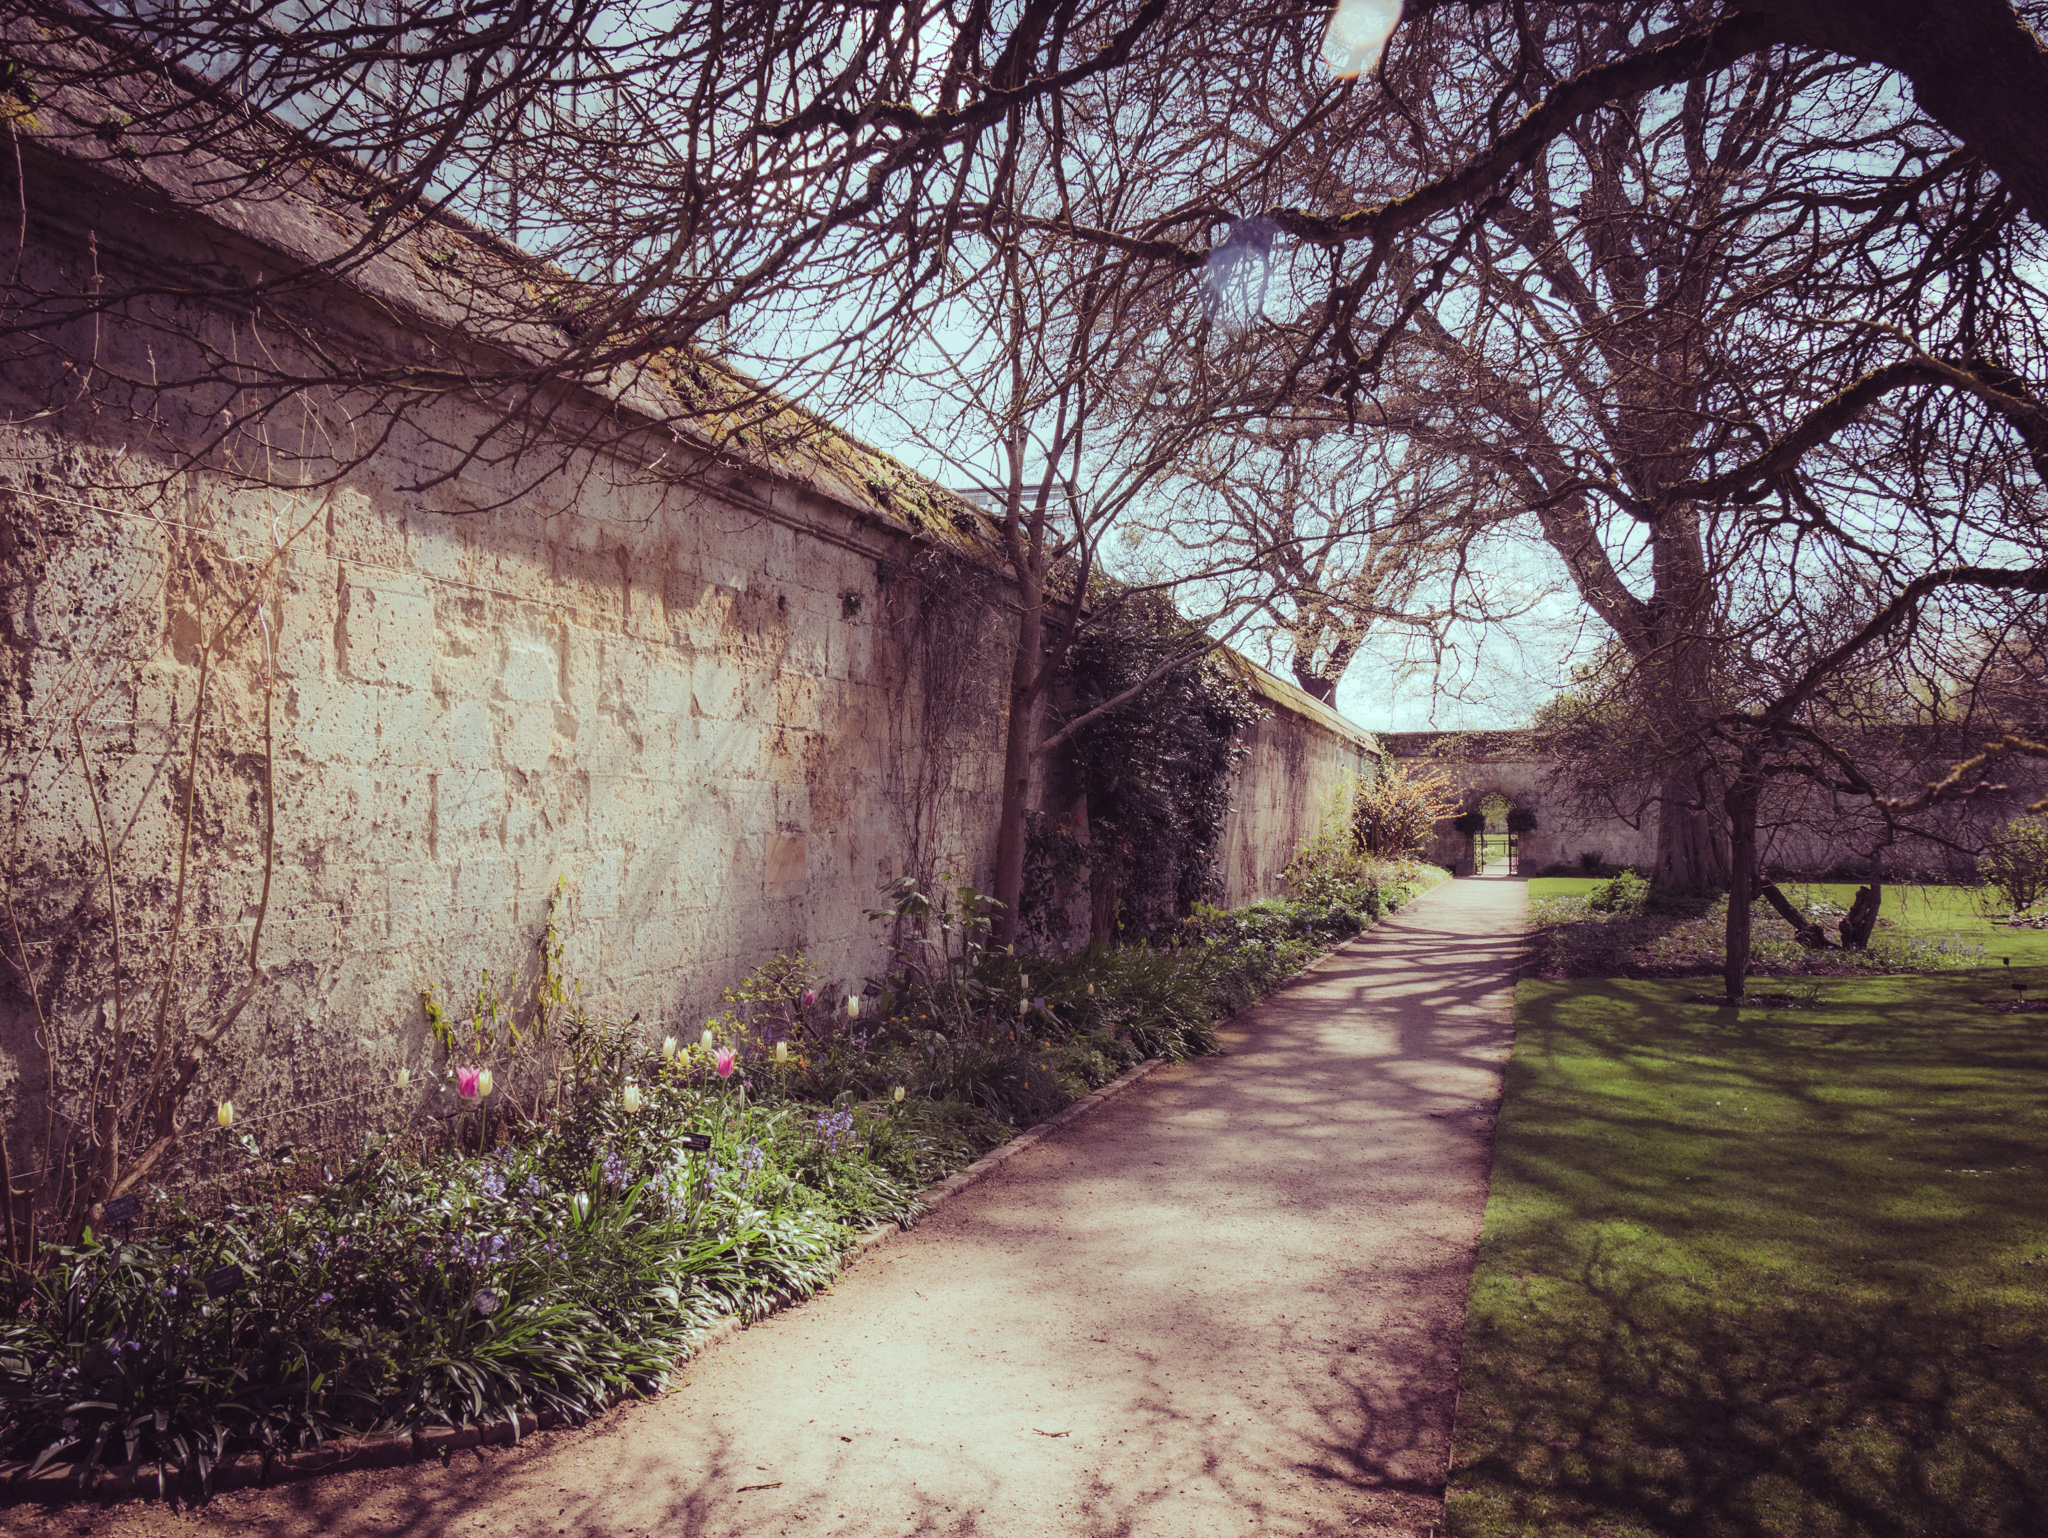 Oxford Botanic Gardens – The story of the photographs